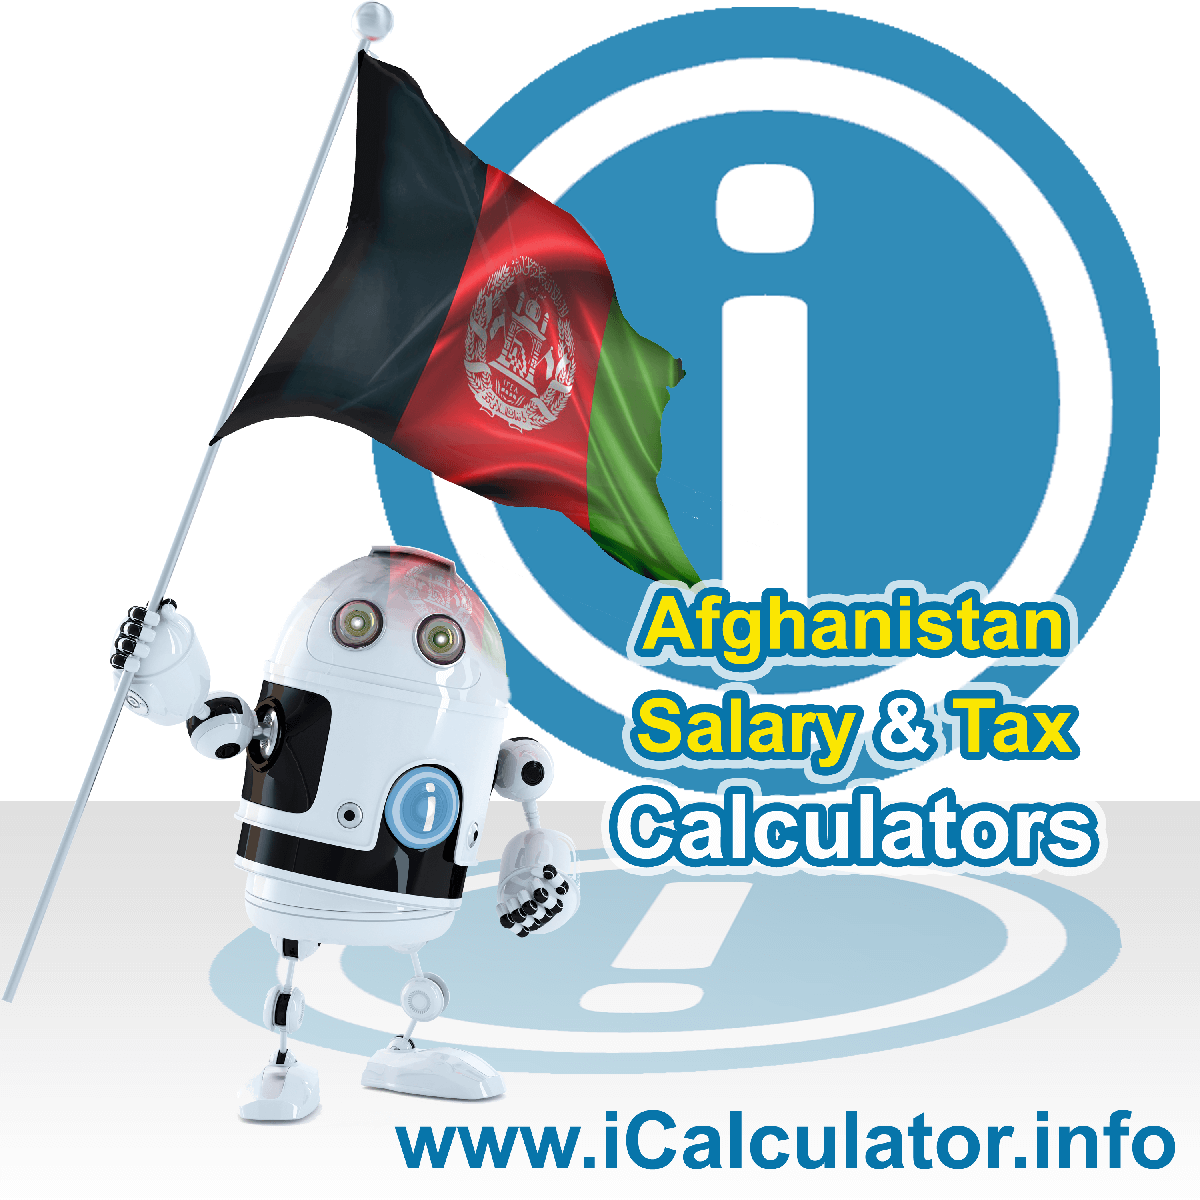 Afghanistan Wage Calculator. This image shows the Afghanistan flag and information relating to the tax formula for the Afghanistan Tax Calculator